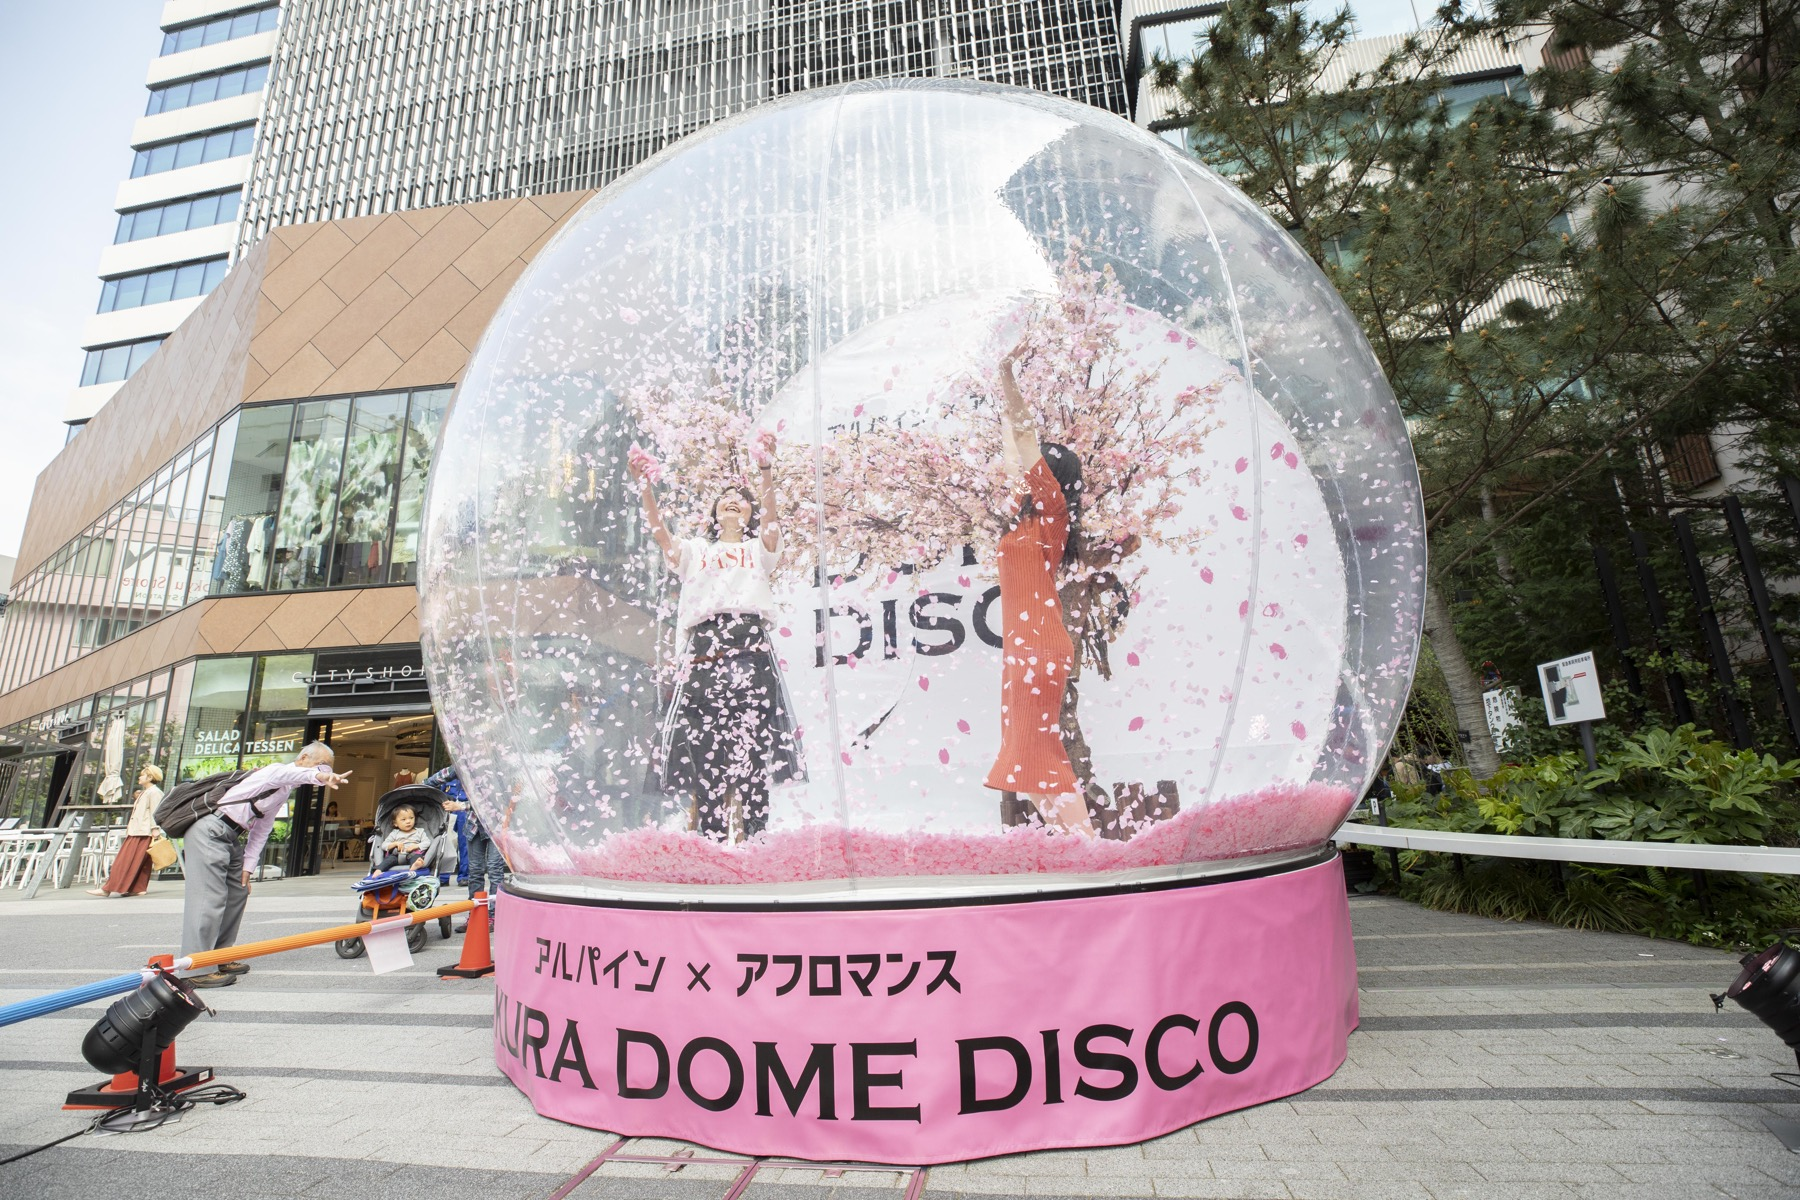 190421_SAKURA DOME DISCO_top20 - 7 / 20